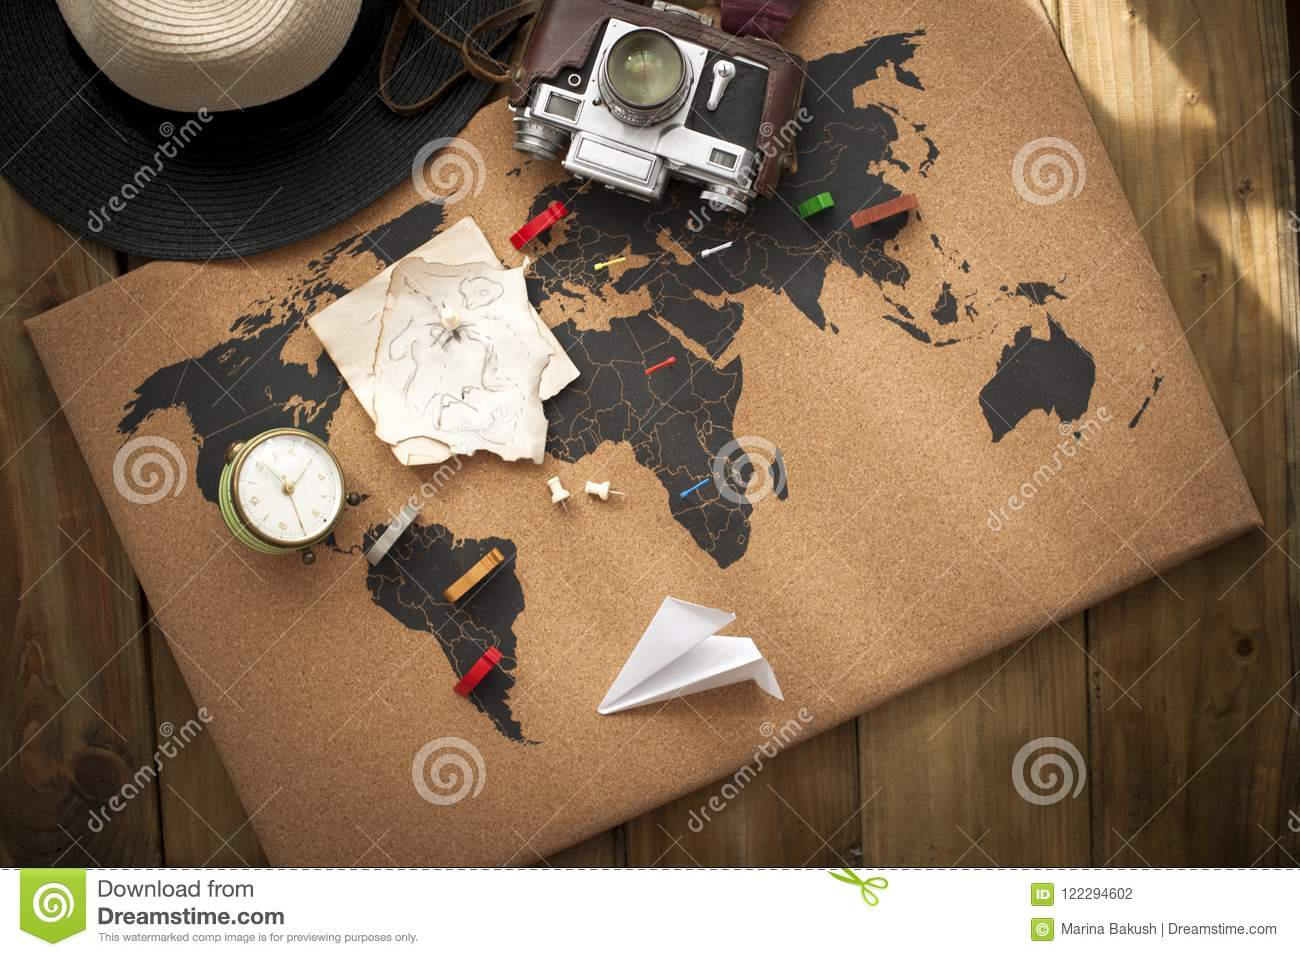 Old camera and route plan on the map, vintage photo. Travel and holidays. Copy space